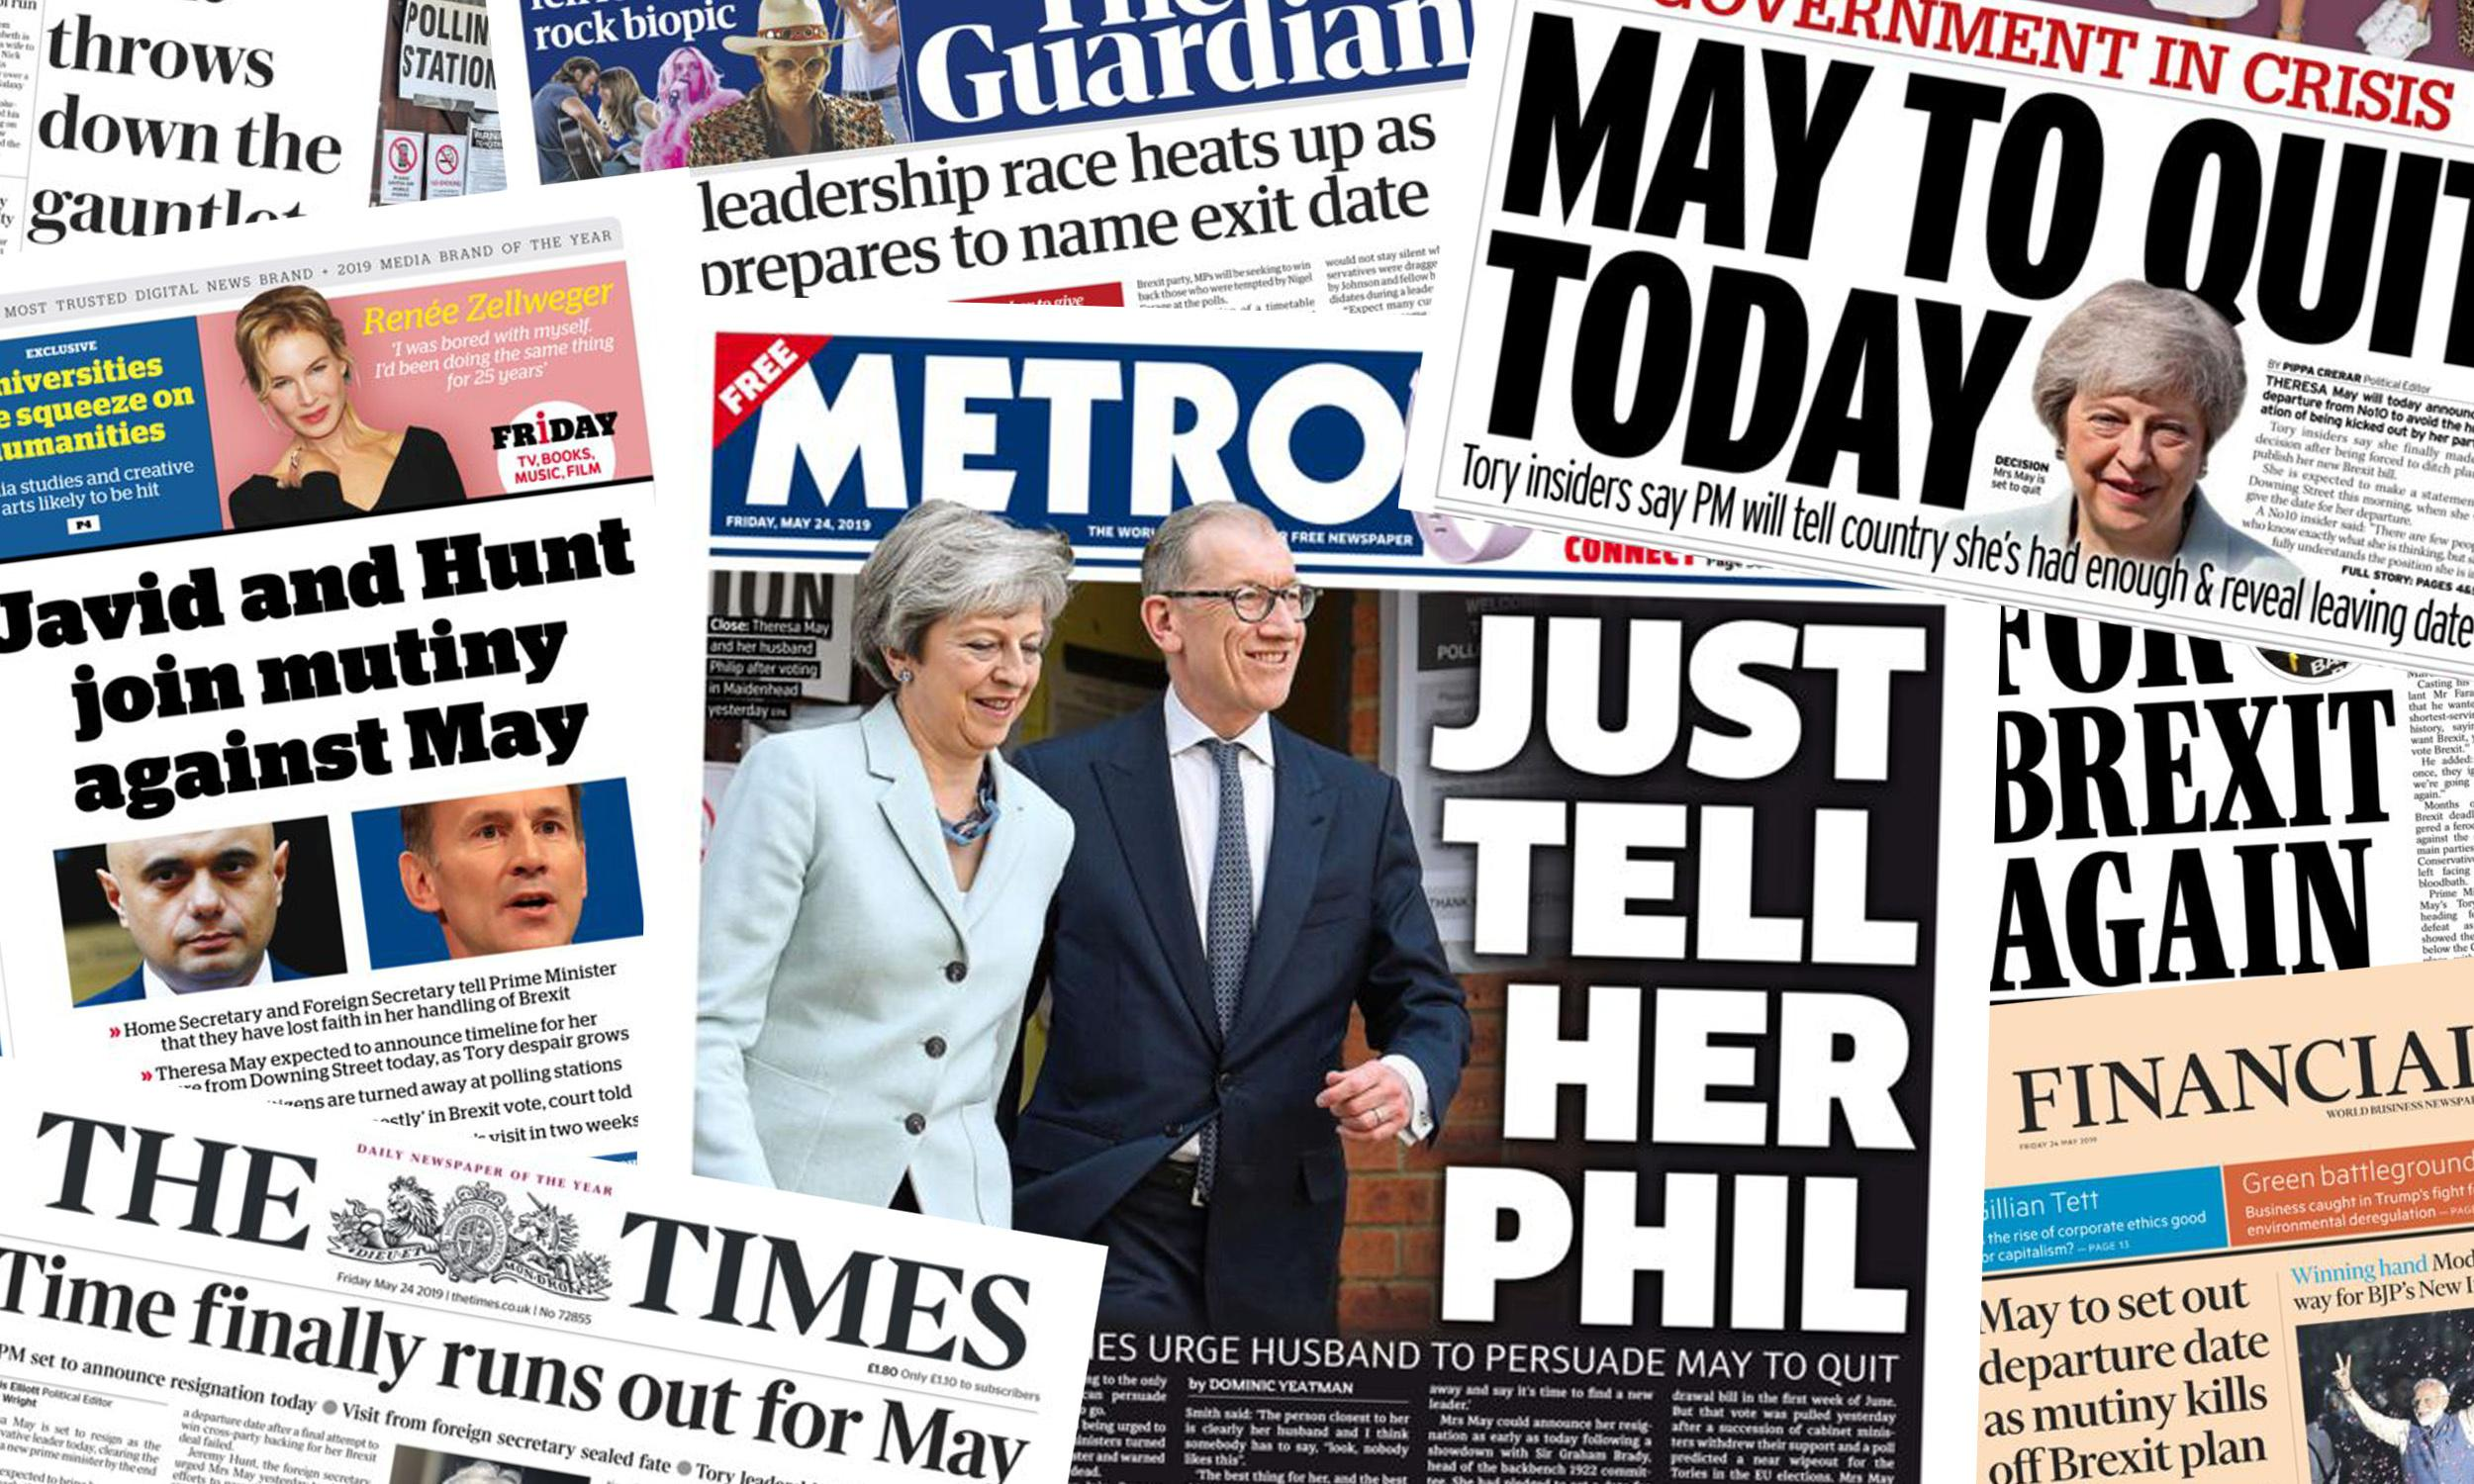 'Time finally runs out': what the papers say about Theresa May's expected departure